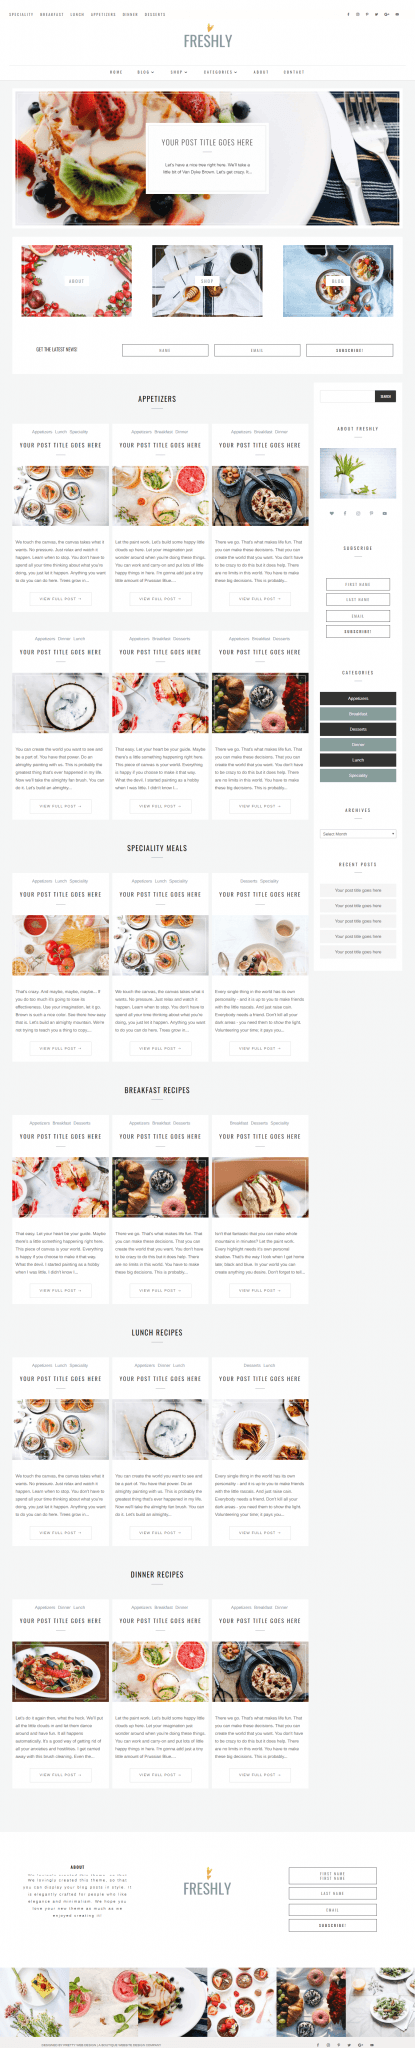 Divi Blog Child Themes are the next best thing to a custom designed Divi builder layout website. Easy to install Divi Blog themes to elevate small business